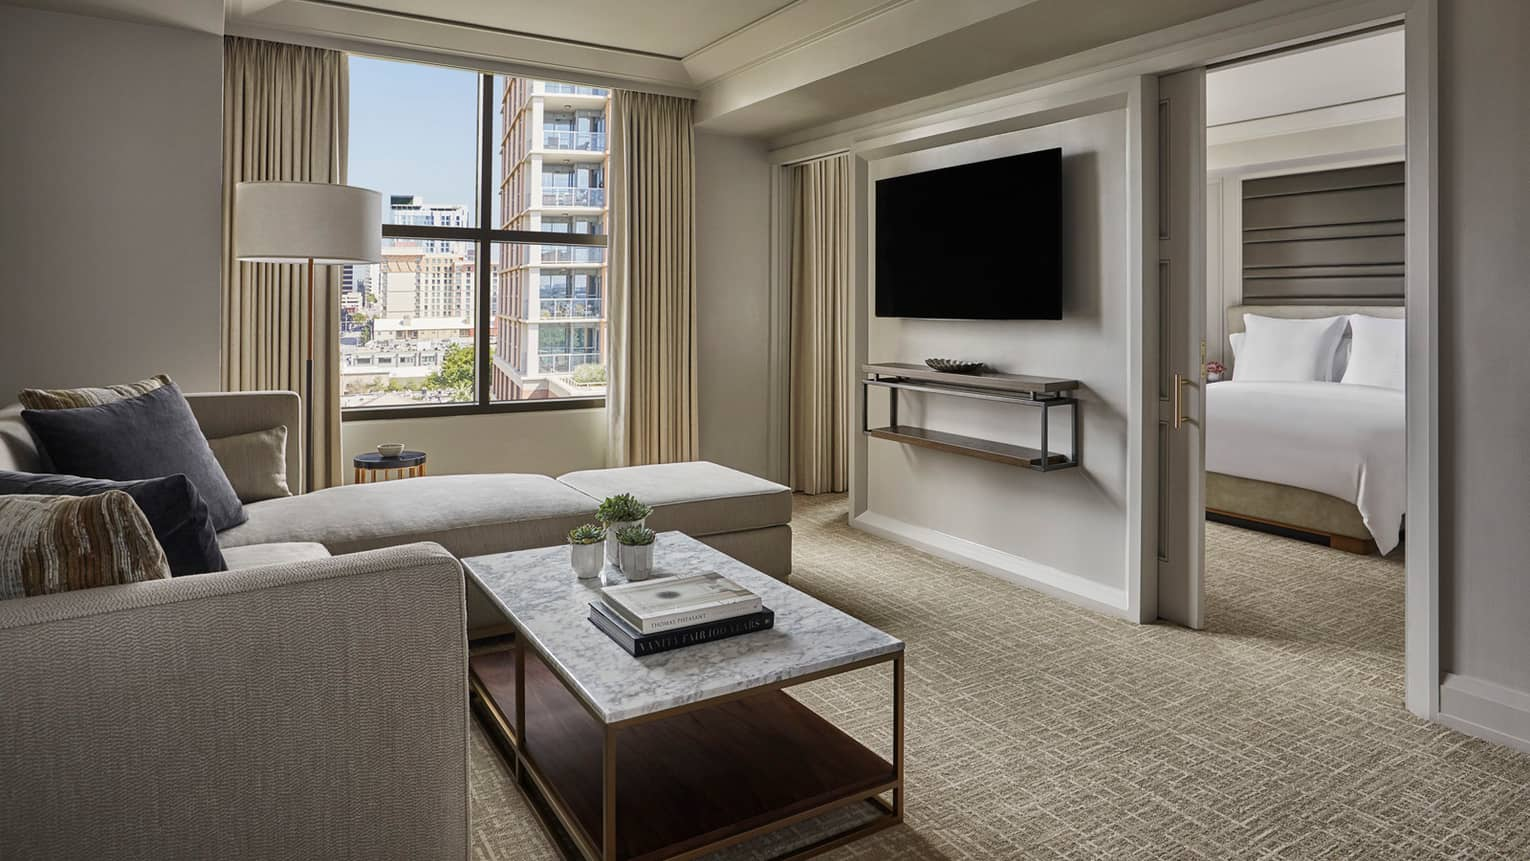 City View Executive Suite living room, window, TV on wall dividing bedroom